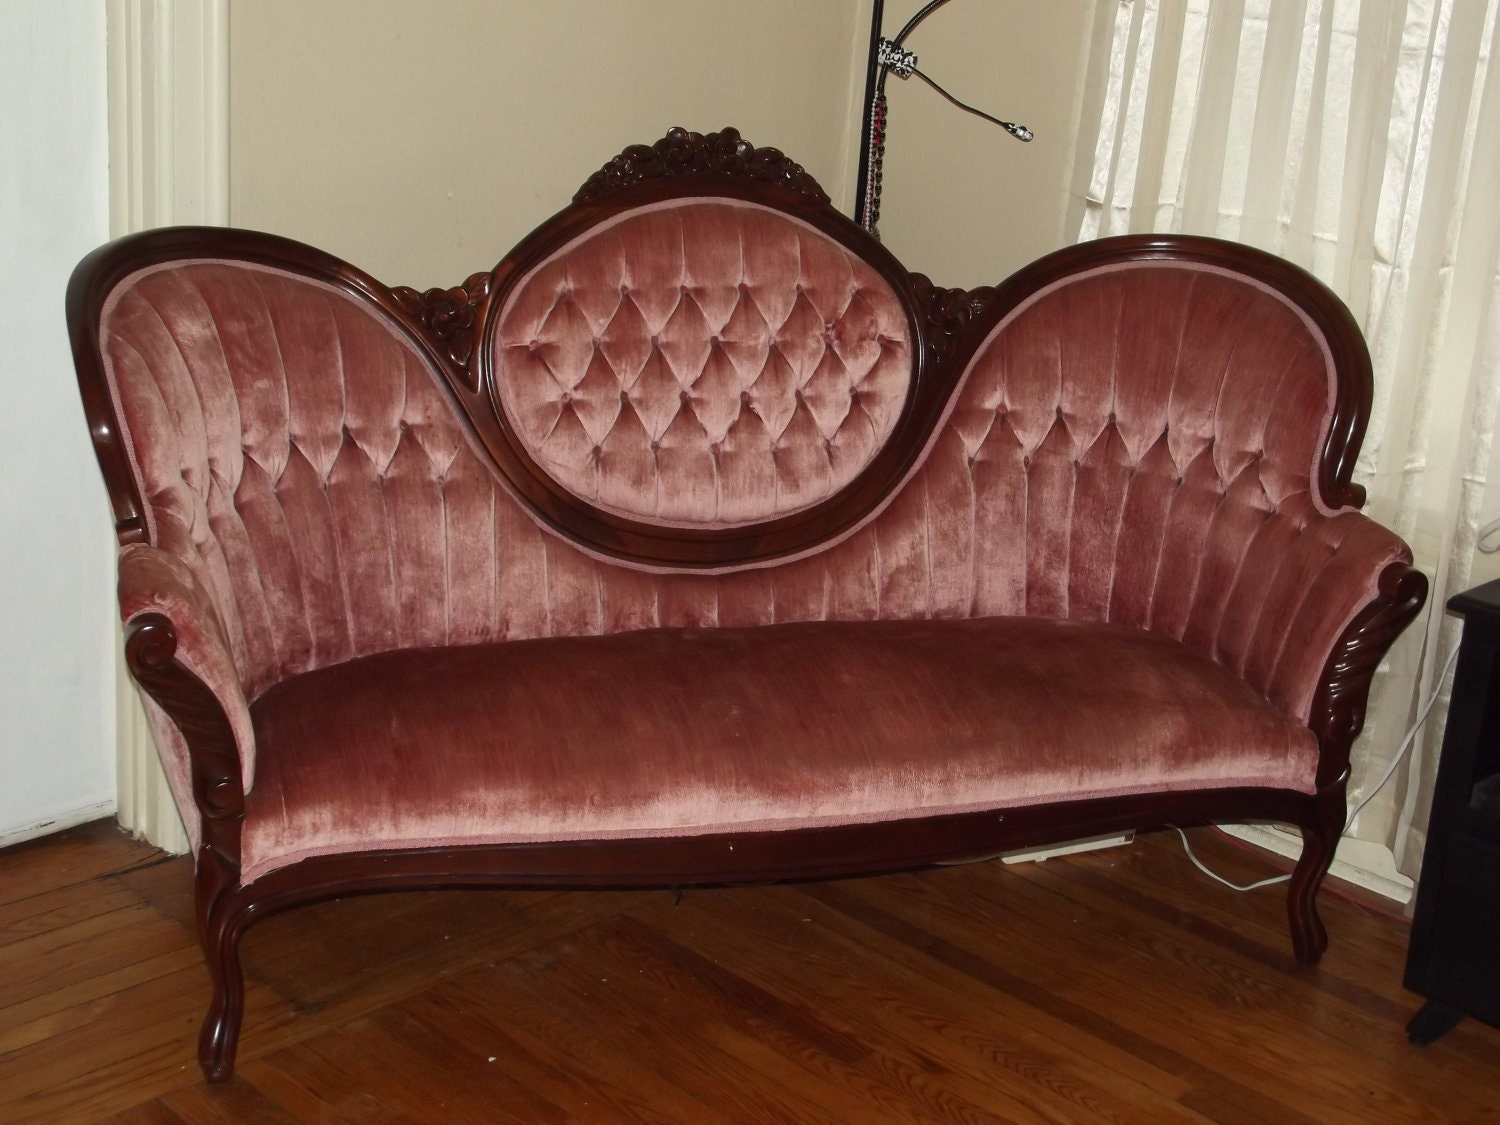 victorian couch. Black Bedroom Furniture Sets. Home Design Ideas